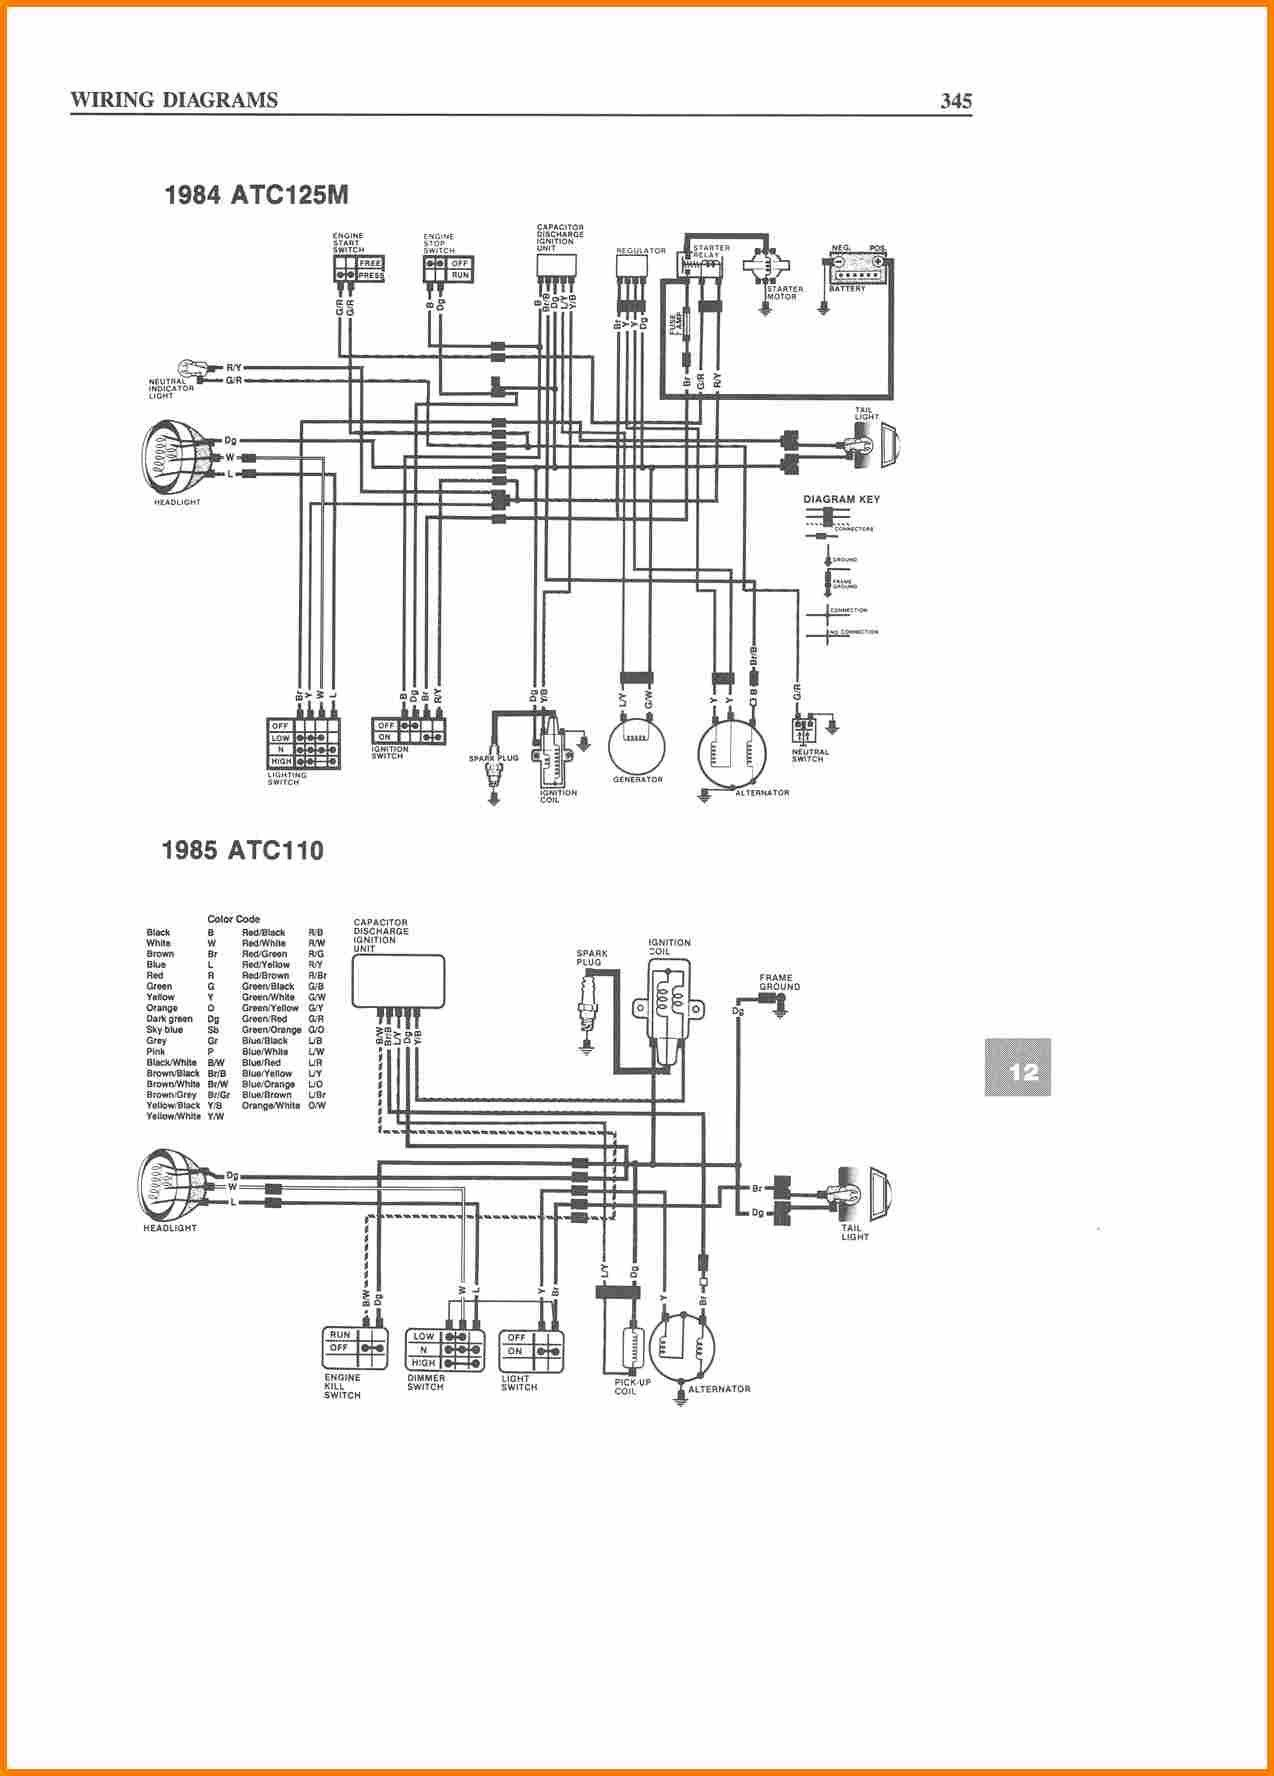 taotao 50cc scooter wiring diagram beautiful magnificent tao 125 new atv [ 1274 x 1776 Pixel ]